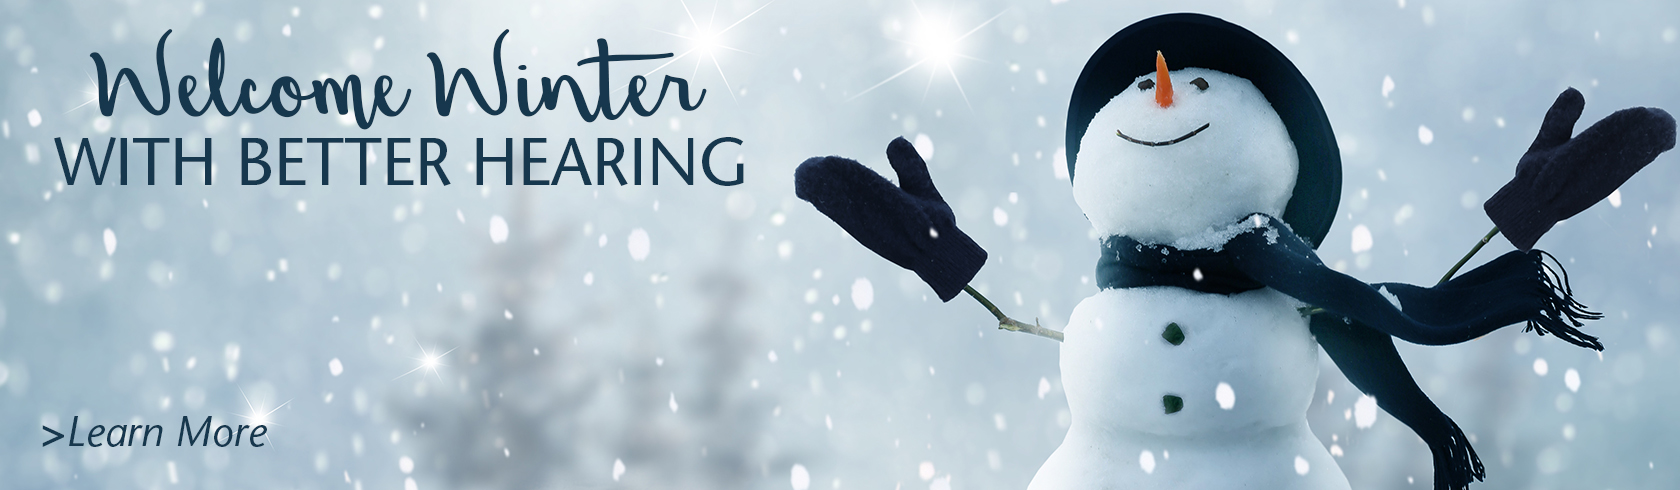 Welcome Winter Slider